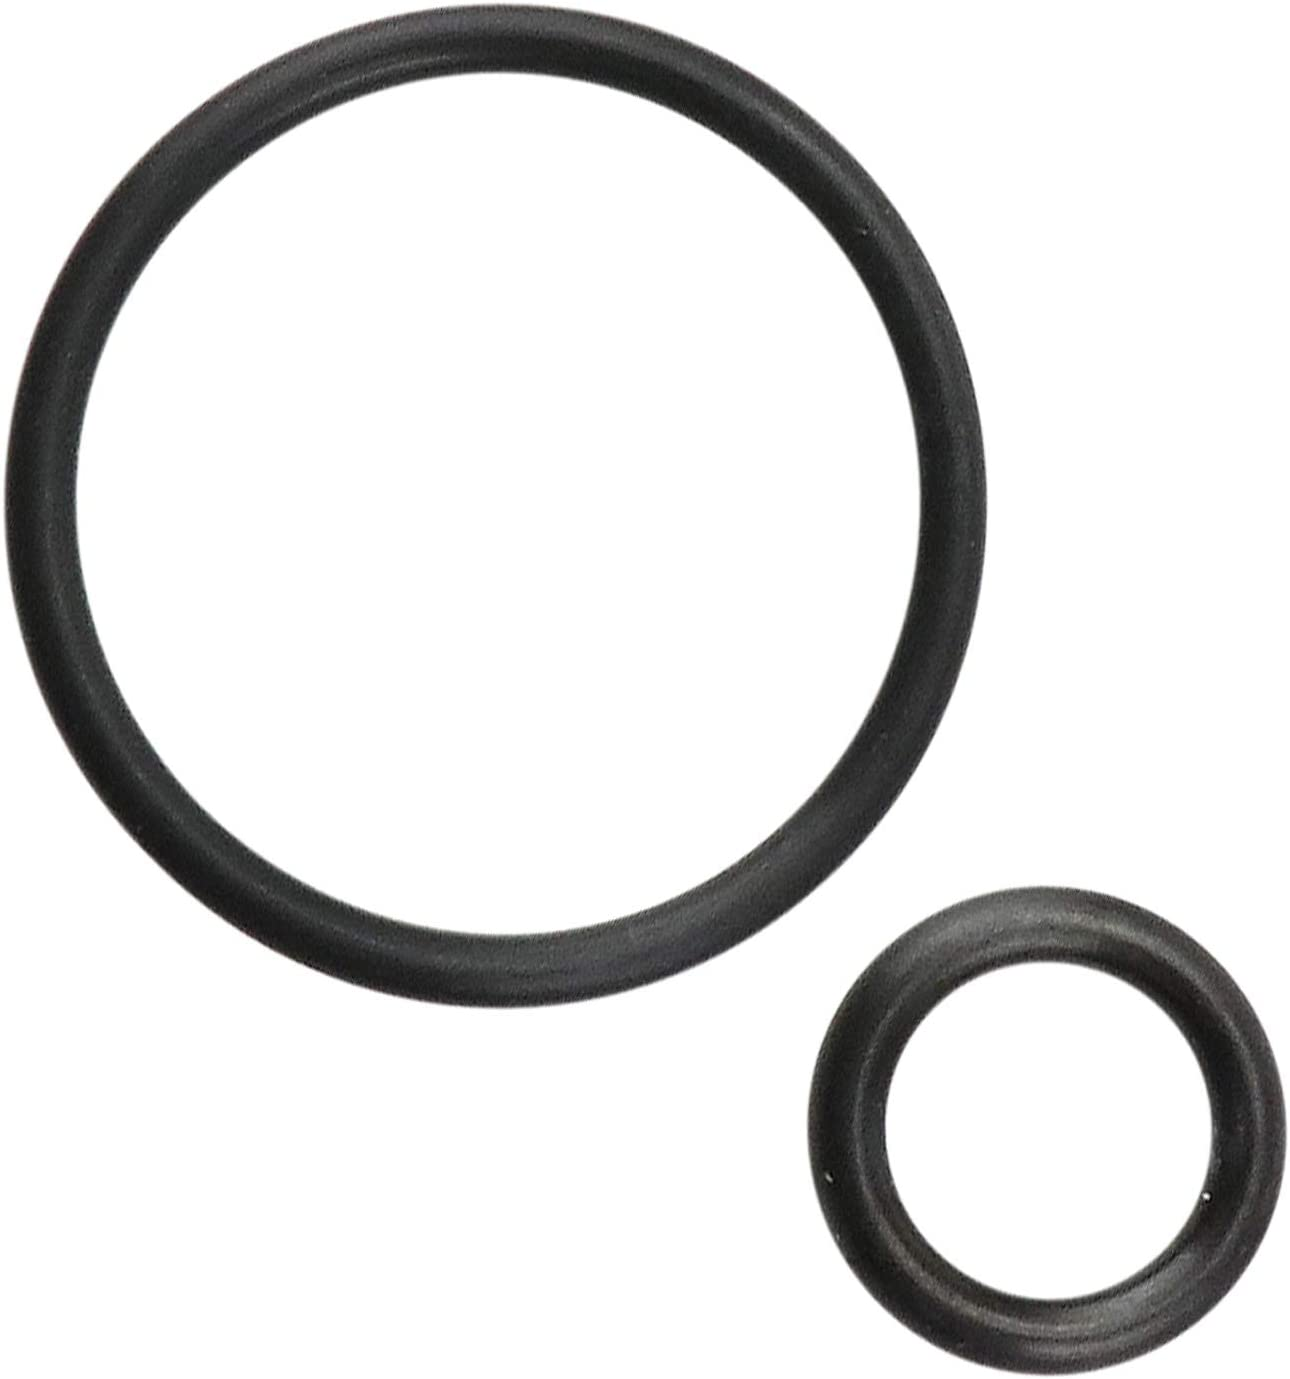 Beck Arnley 158-0434 Fuel Injection O-Ring Kit